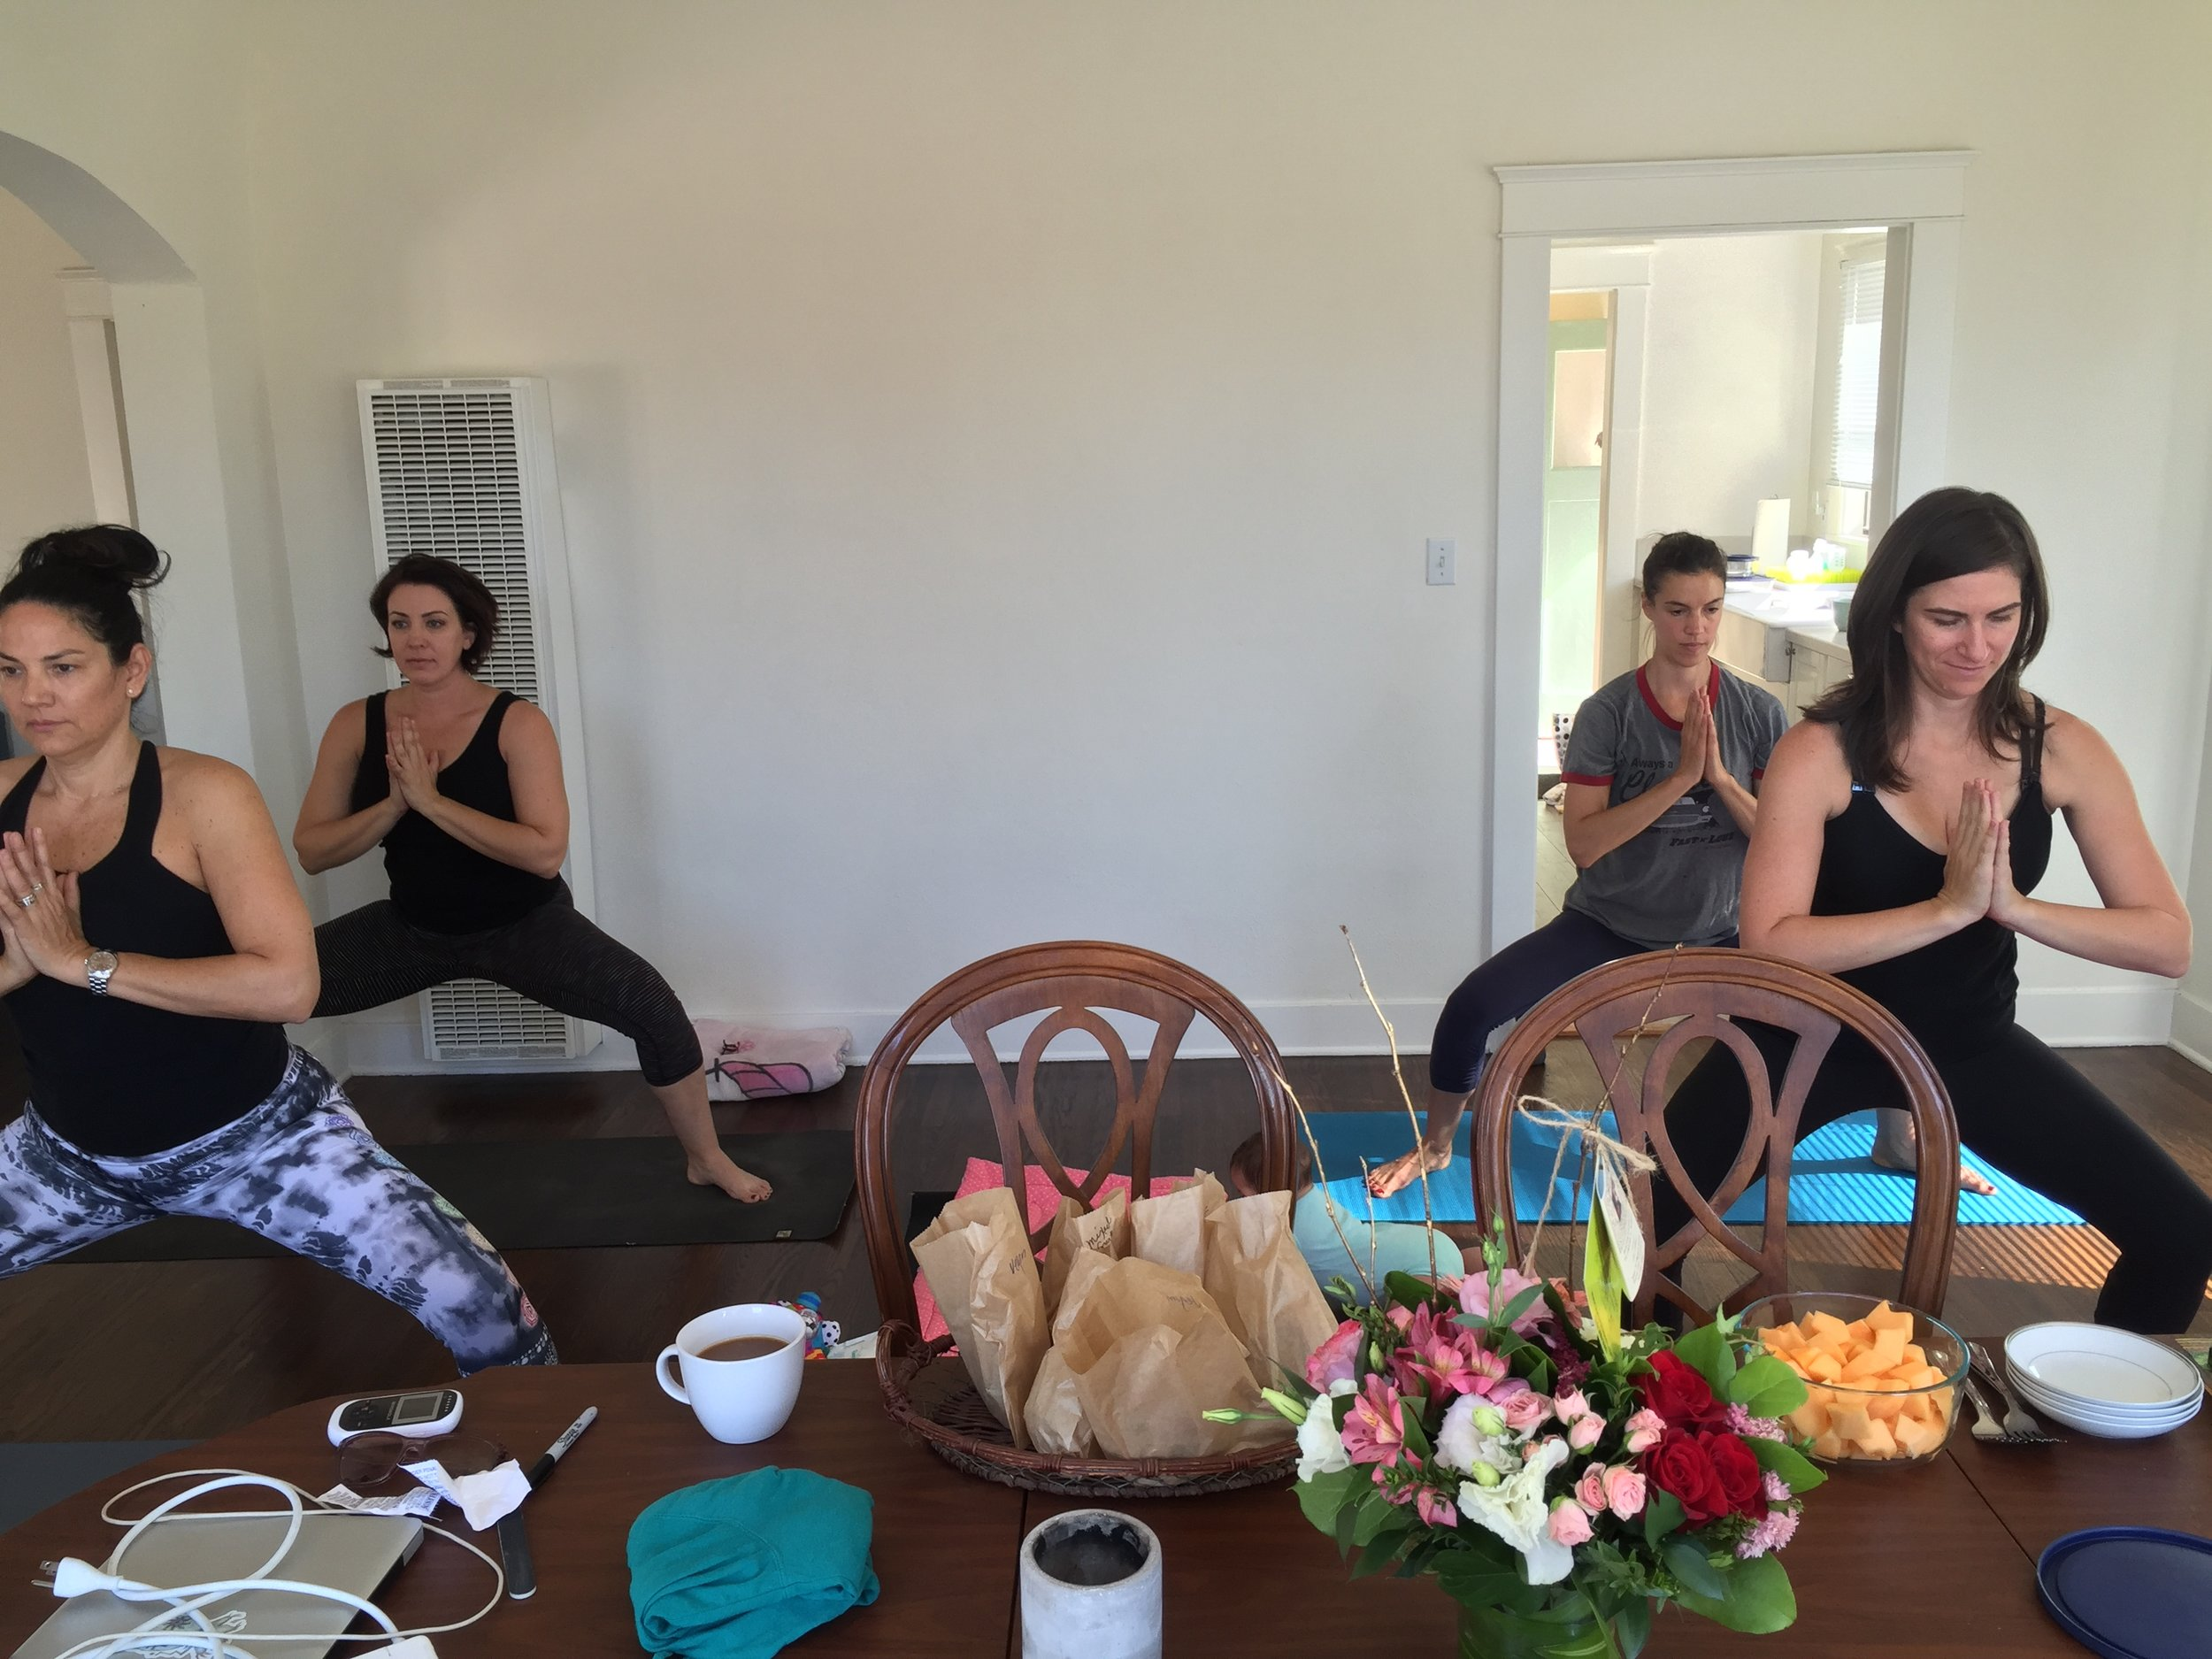 Bridal_Brunch_Yoga_Temple_Pose.jpg